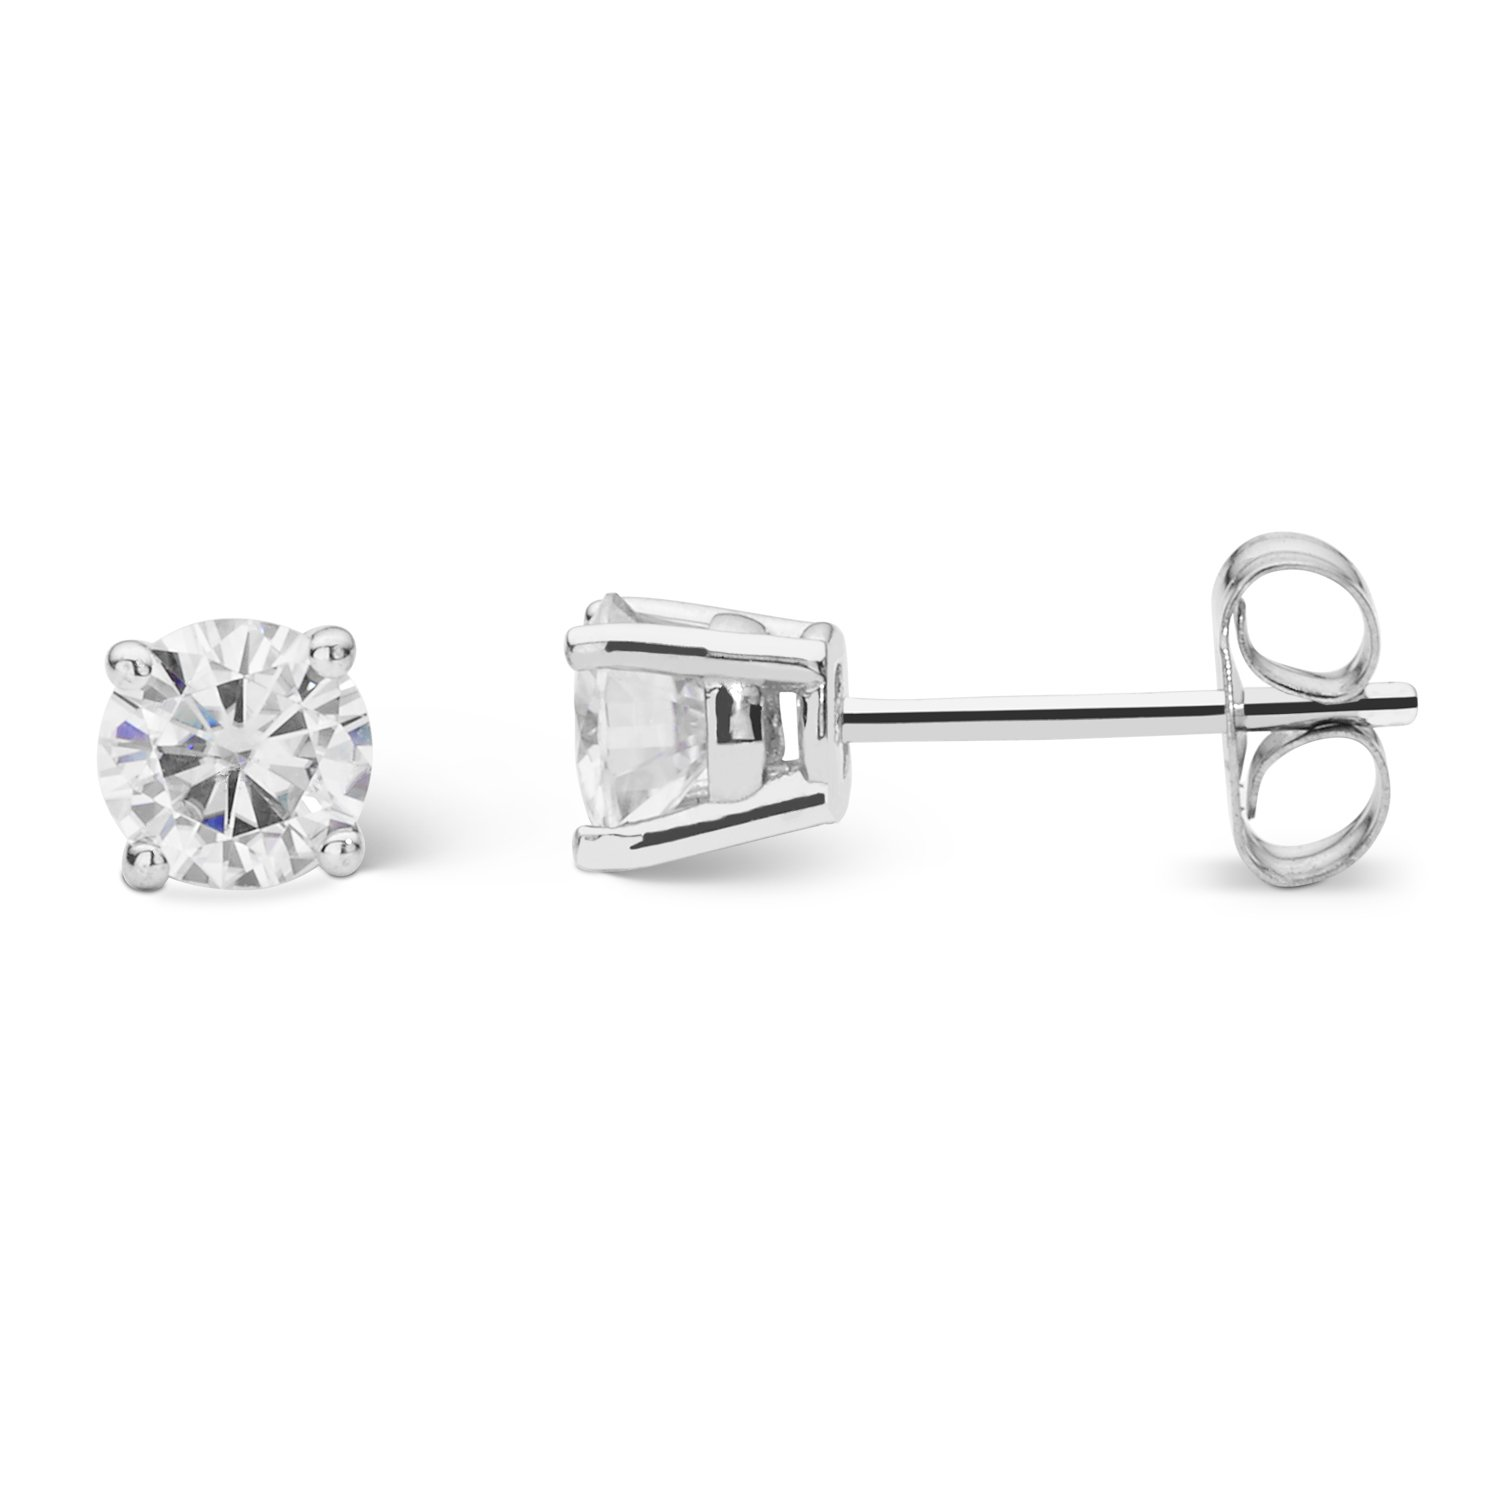 gold earrings white neo home reach pin out stud moissanite